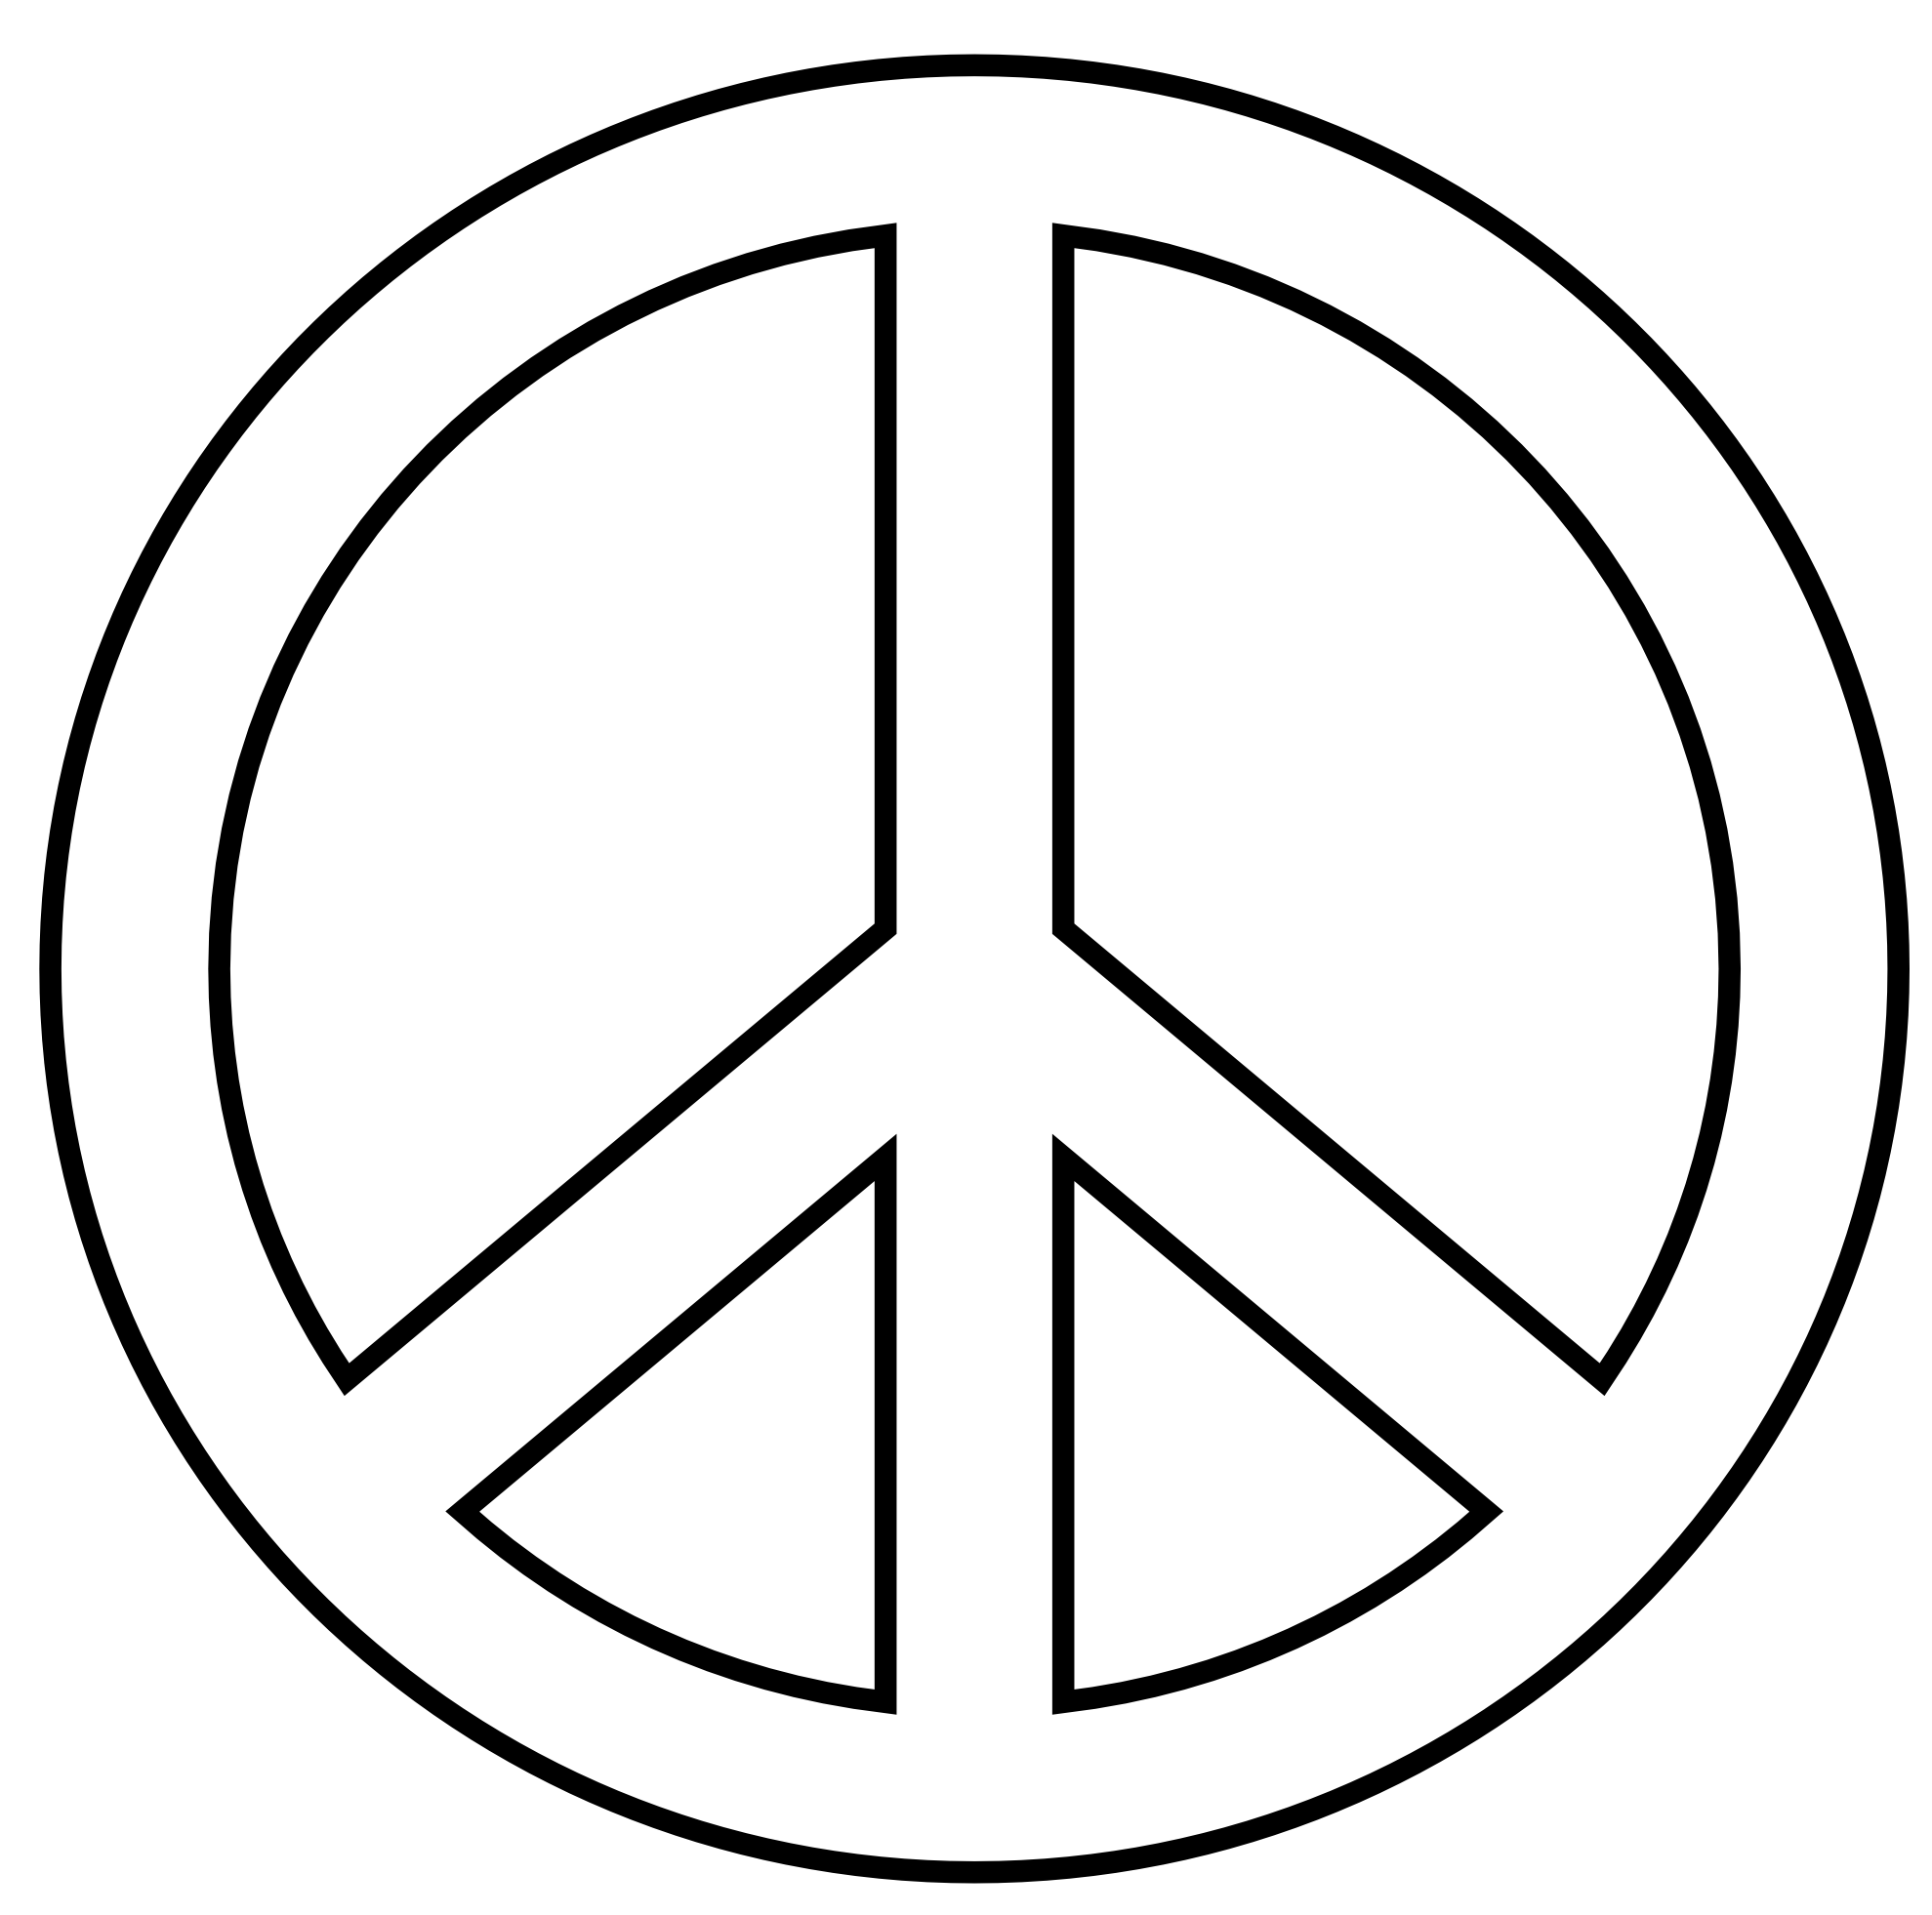 Peace sign clip art black and white free clipart.